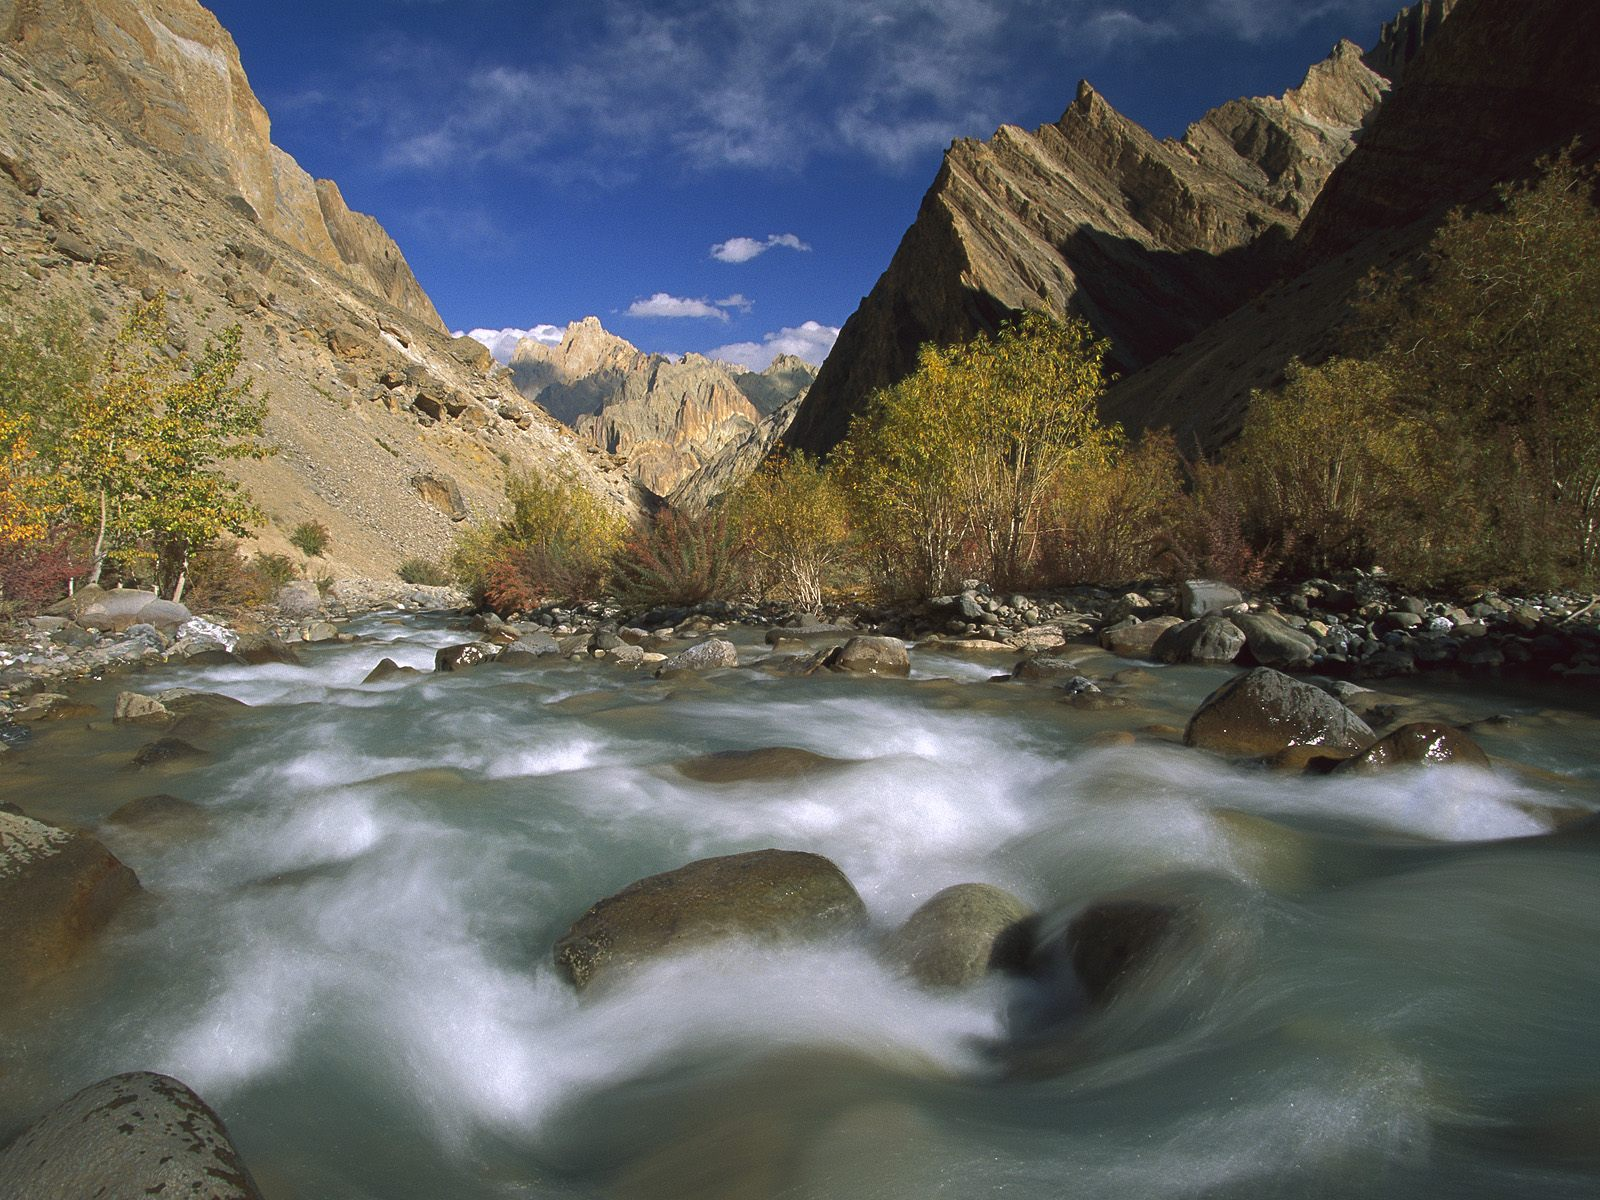 Hanupata River Gorge Ladakh India